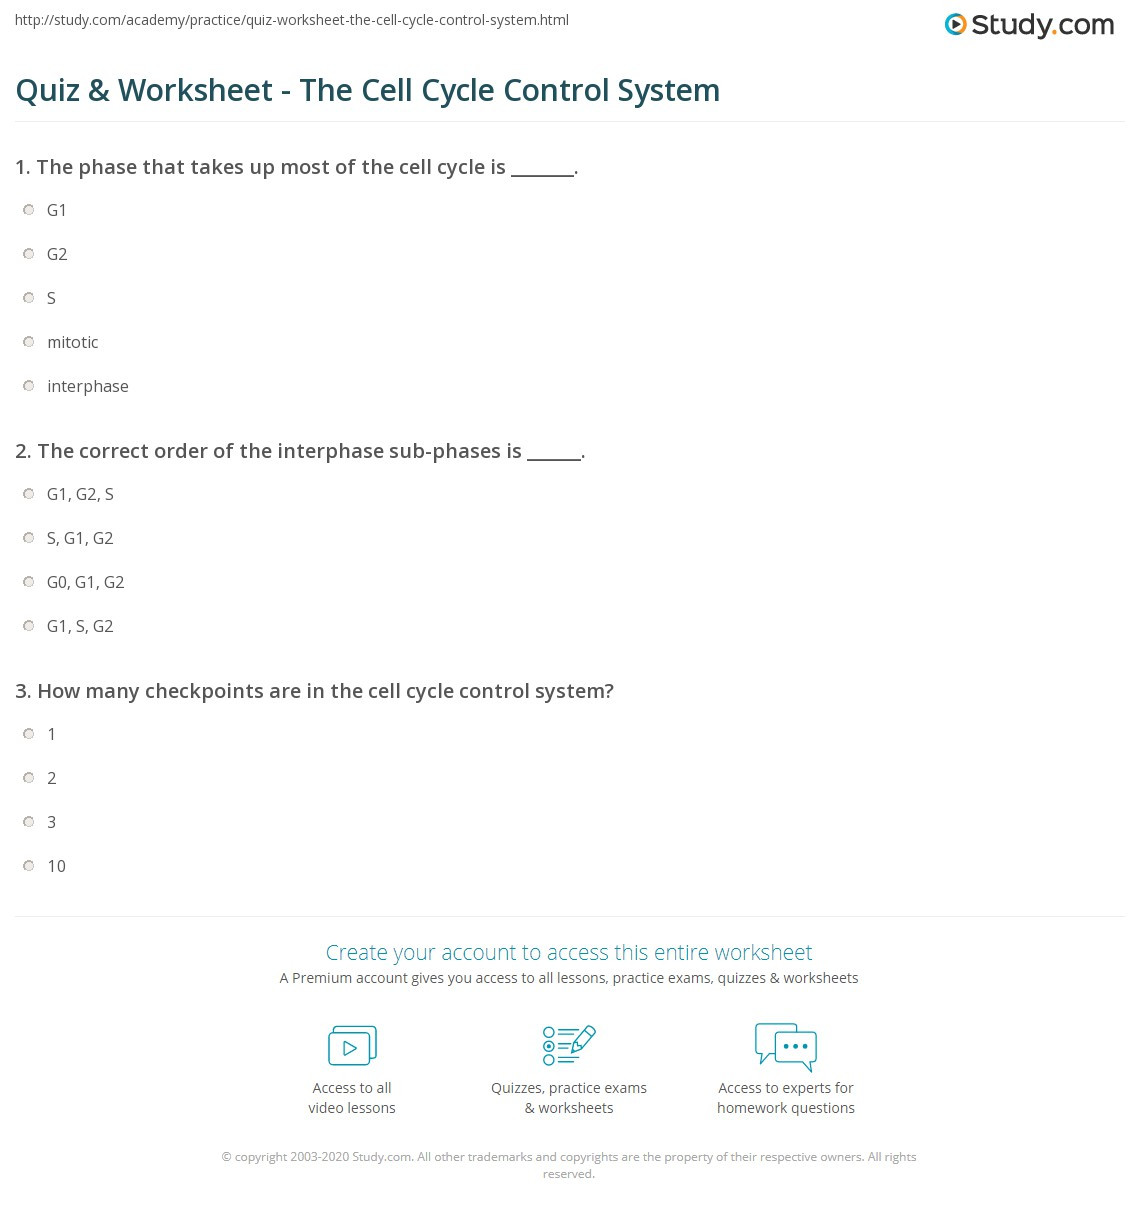 The Cell Cycle Worksheet Quiz & Worksheet the Cell Cycle Control System